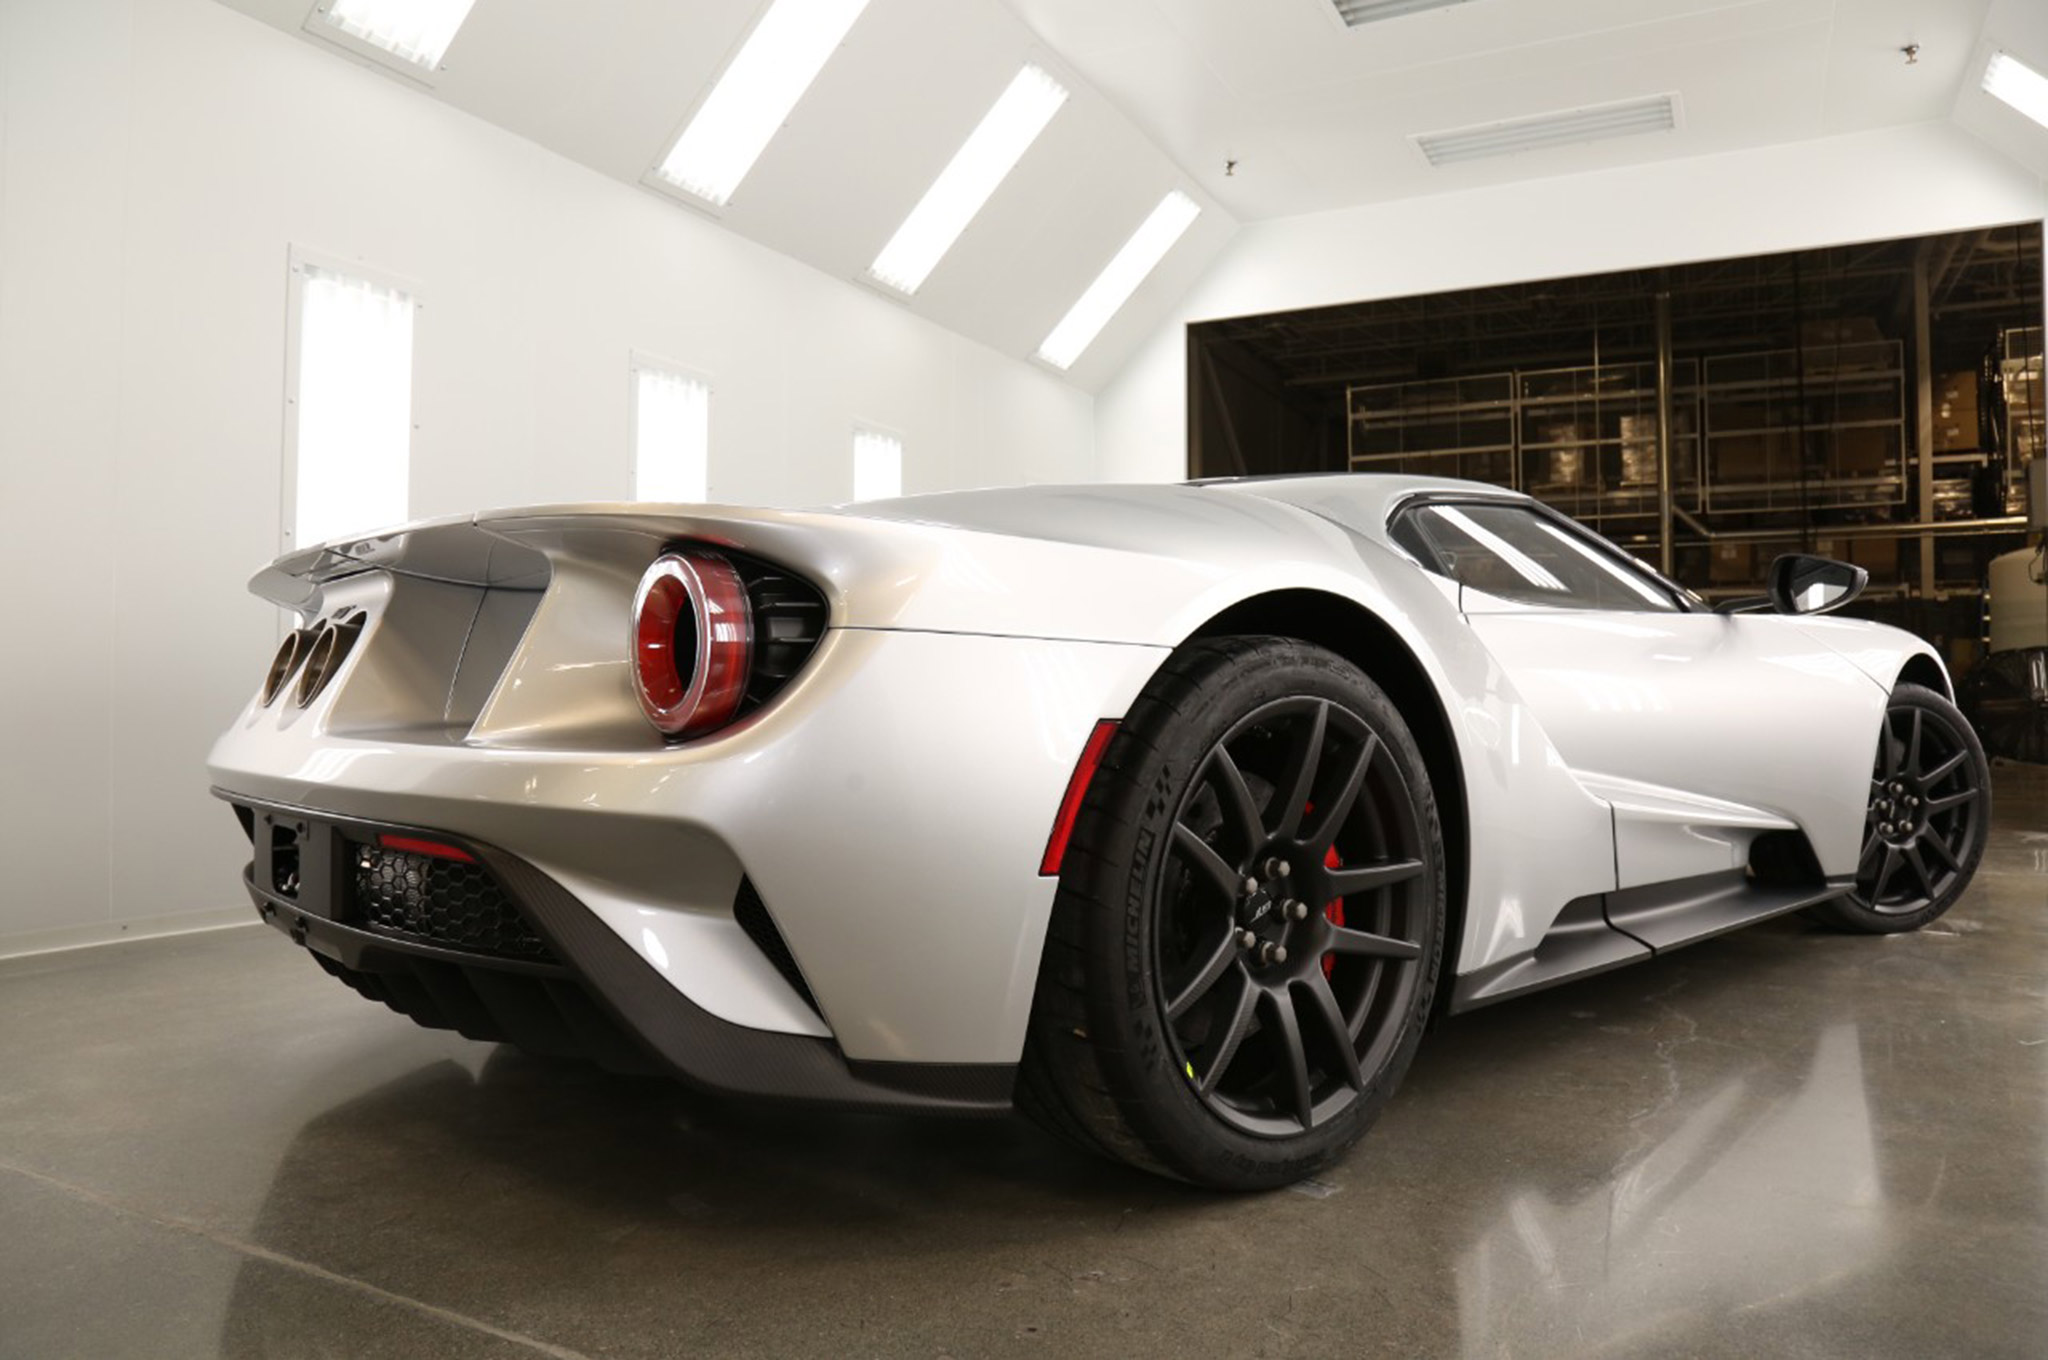 2017 Ford GT Competition Series 007 Rear 3qtr